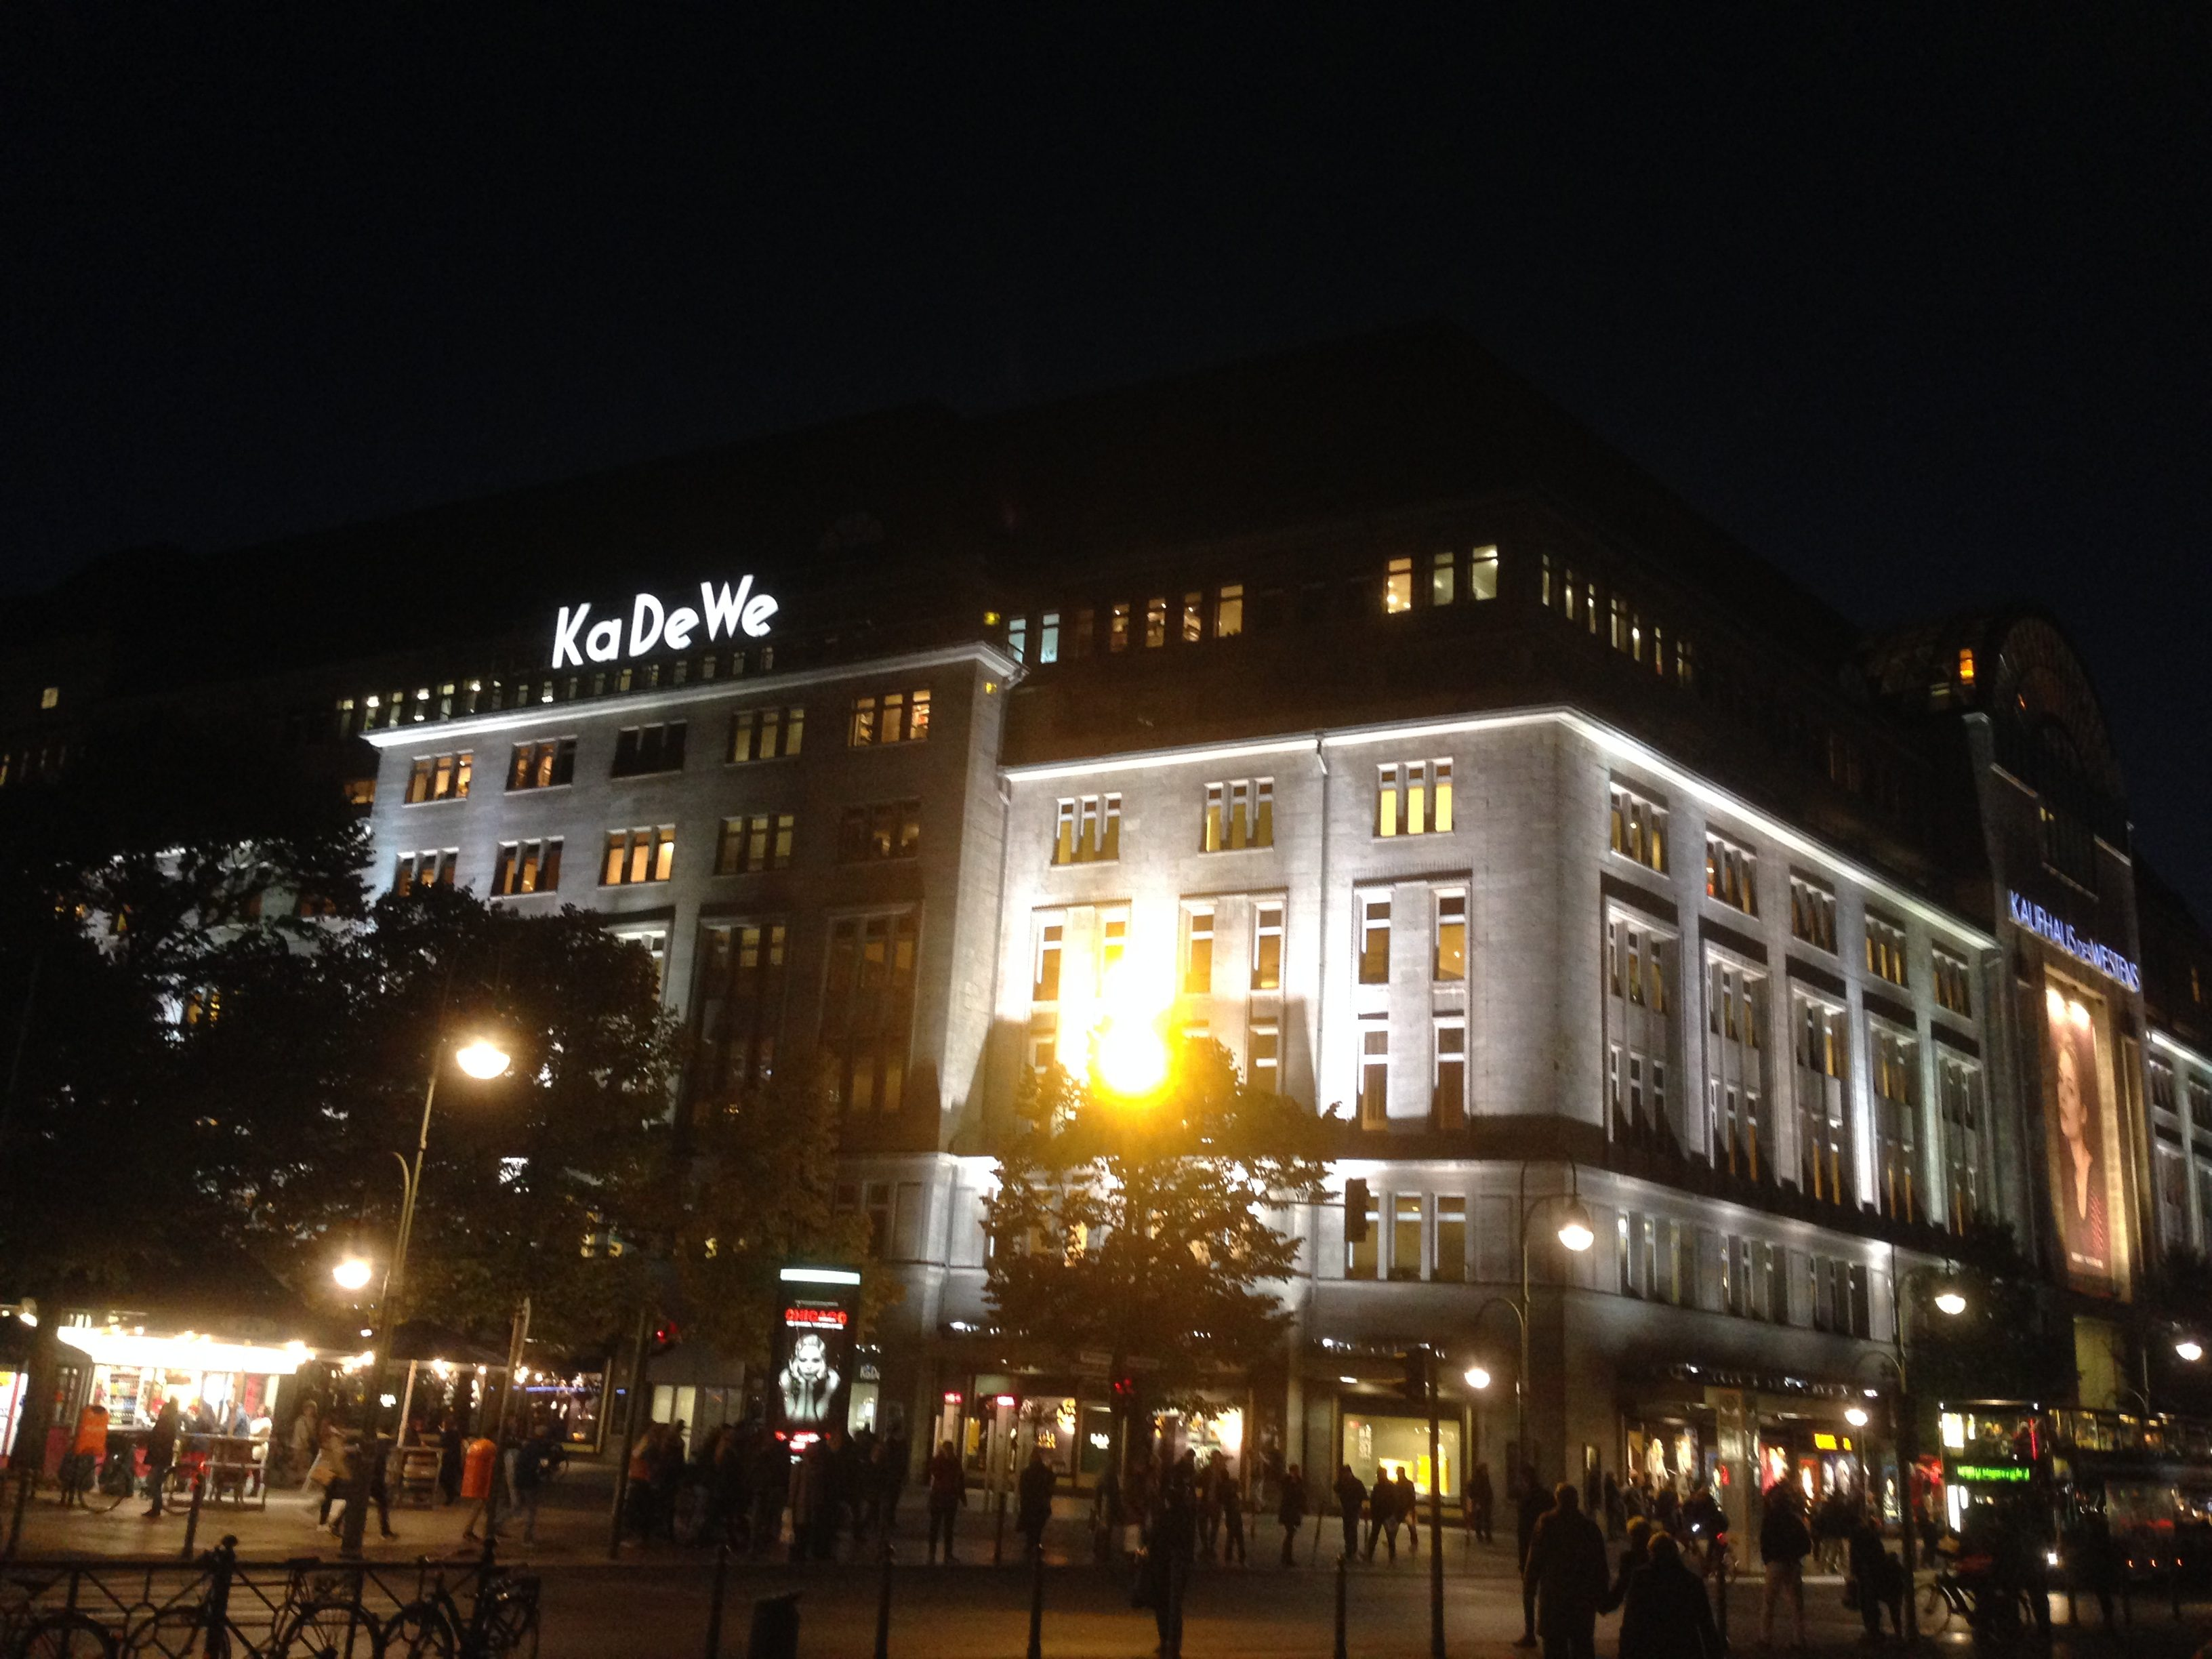 Kaufhaus des Westens or KaDeWe is the signature department store of Berlin